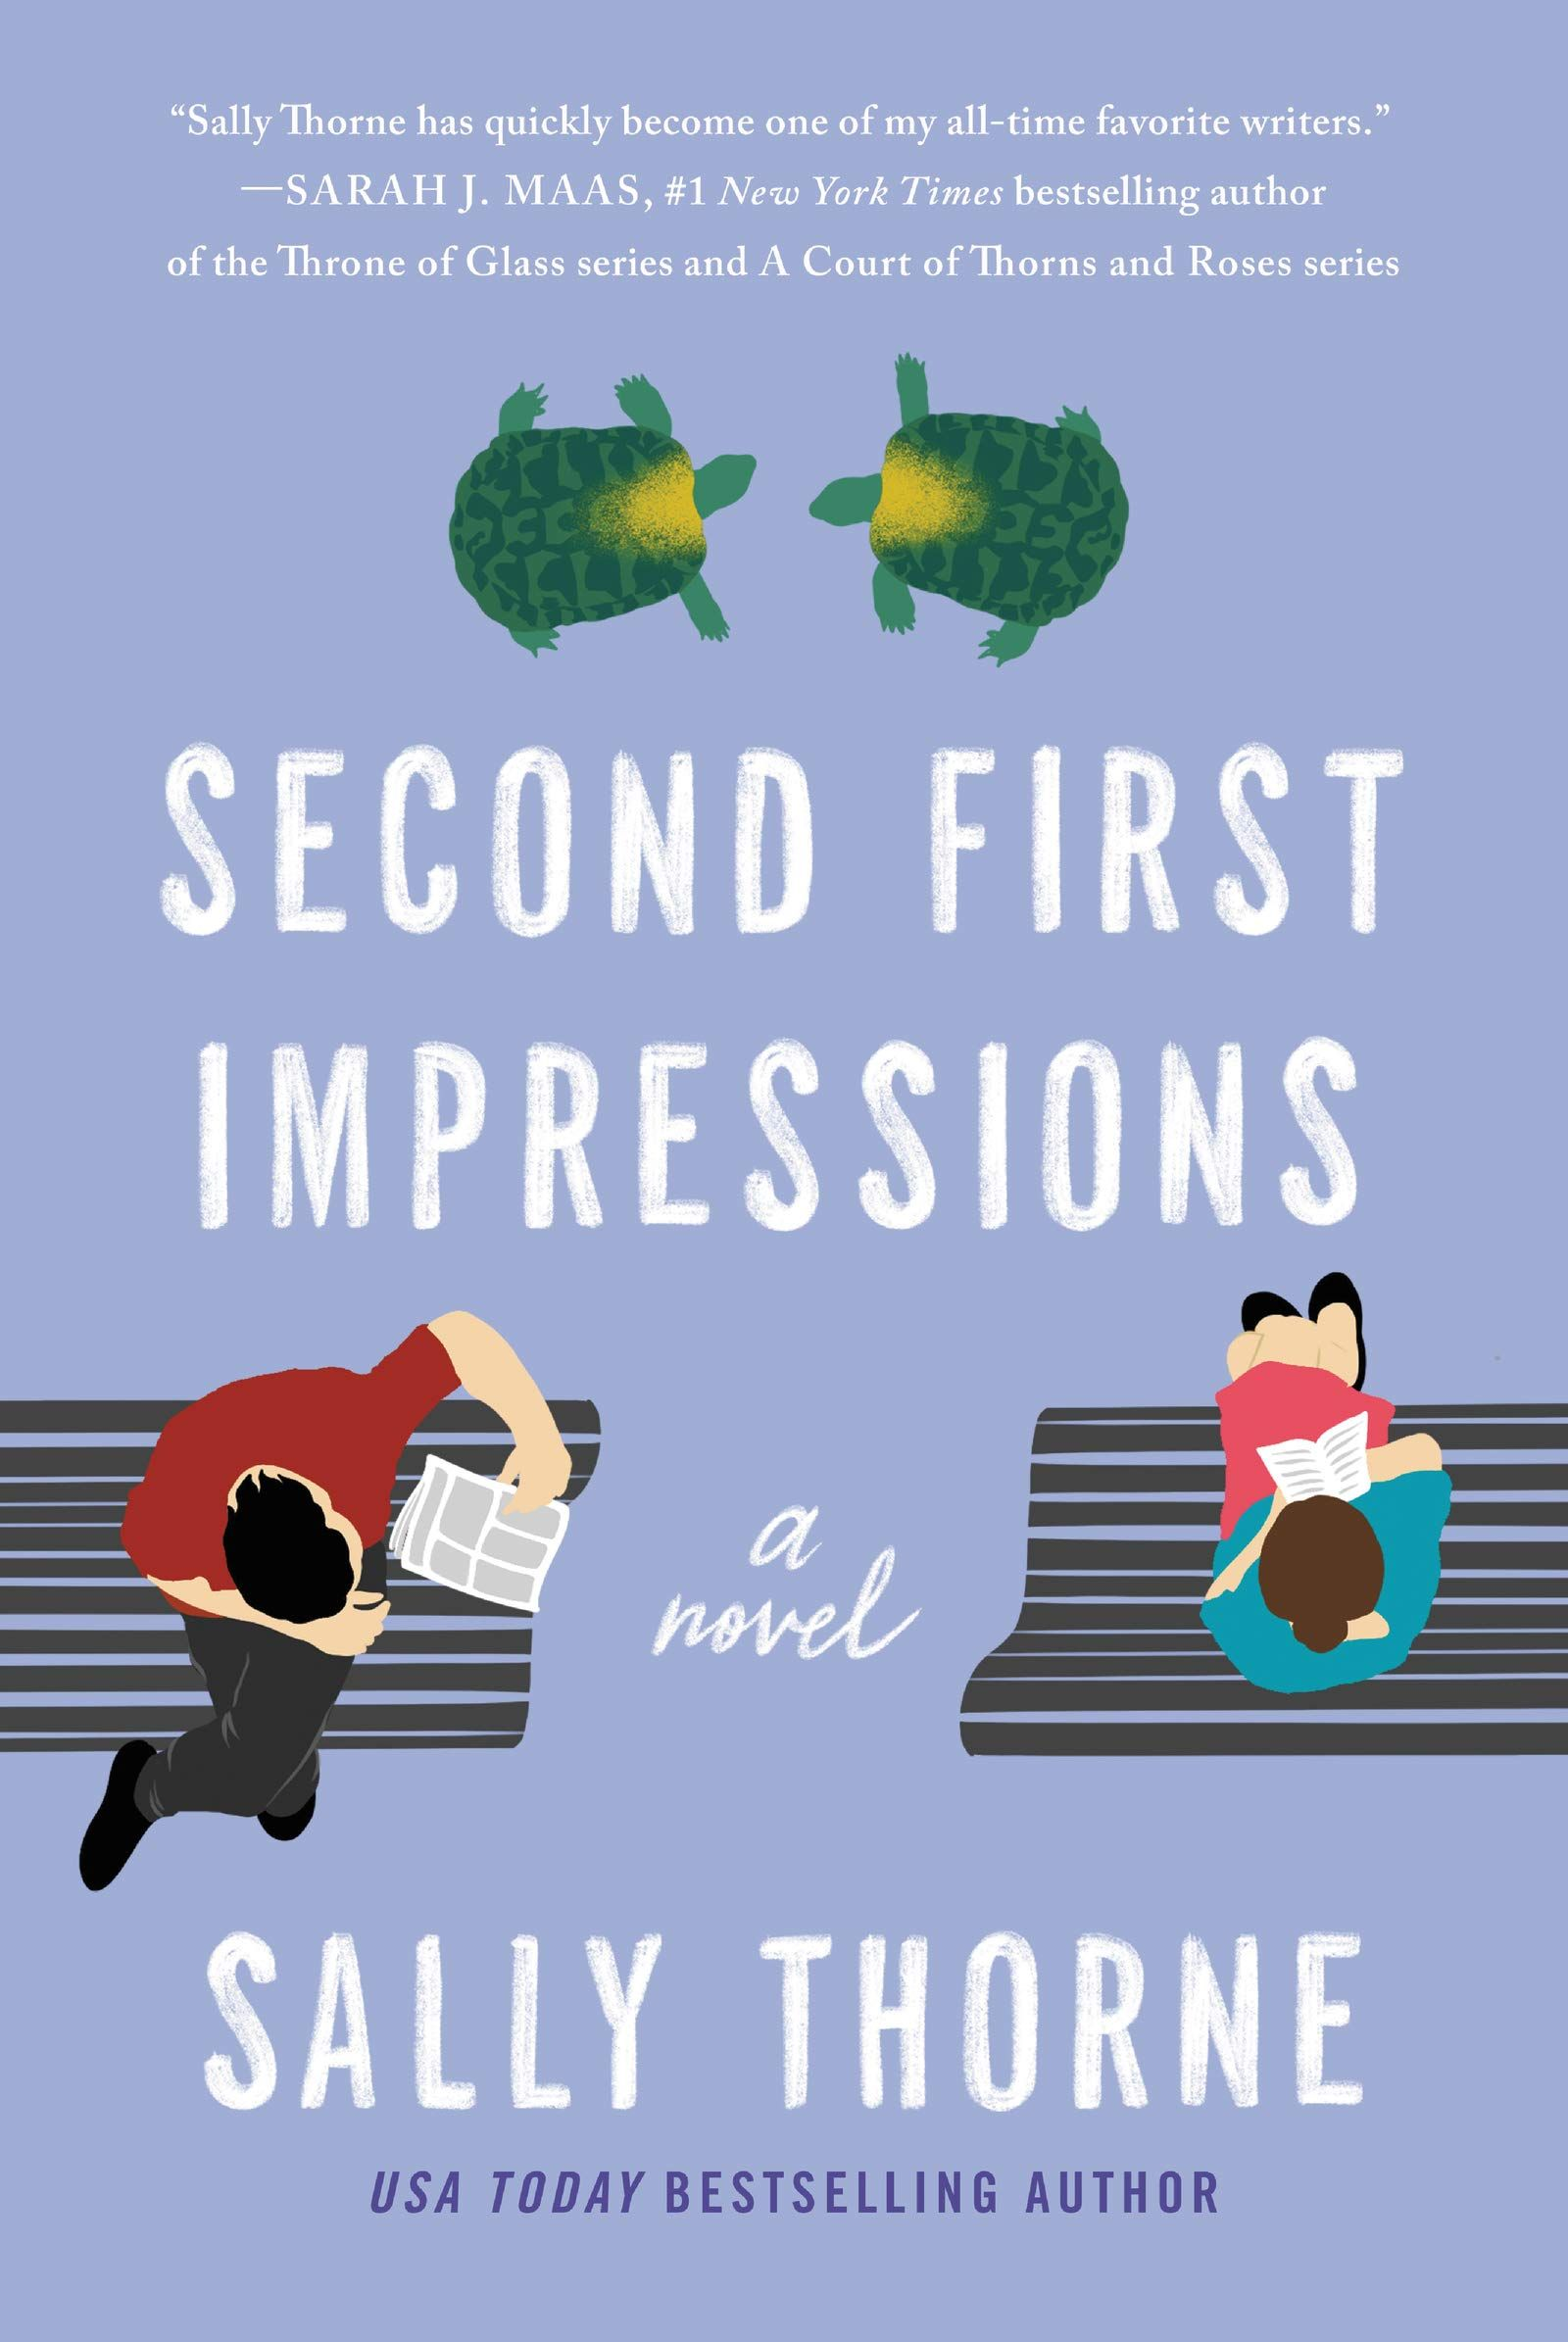 CoverReveal Second First Impressions by Sally Thorne in